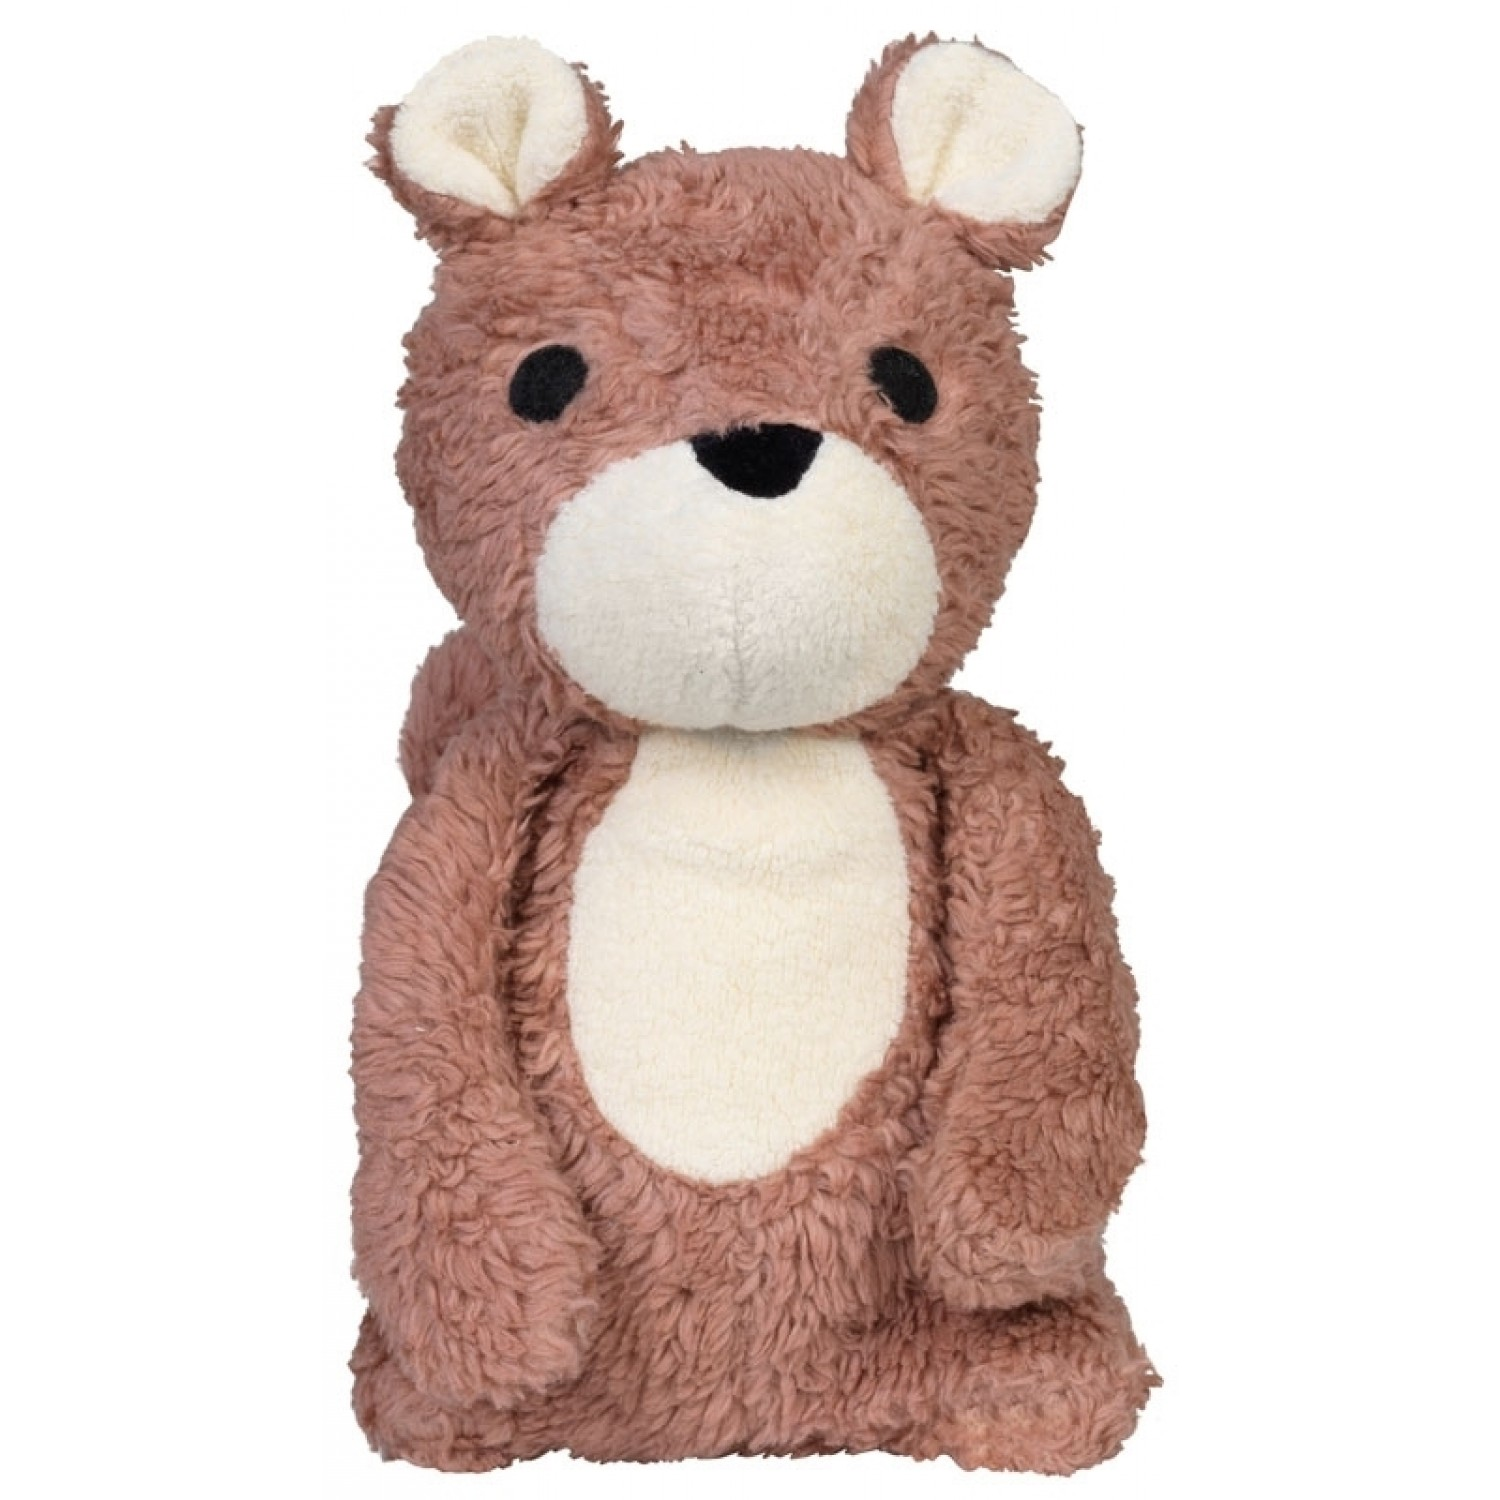 Squirrel Harald - Organic Cotton Plush Toy | Franck & Fischer